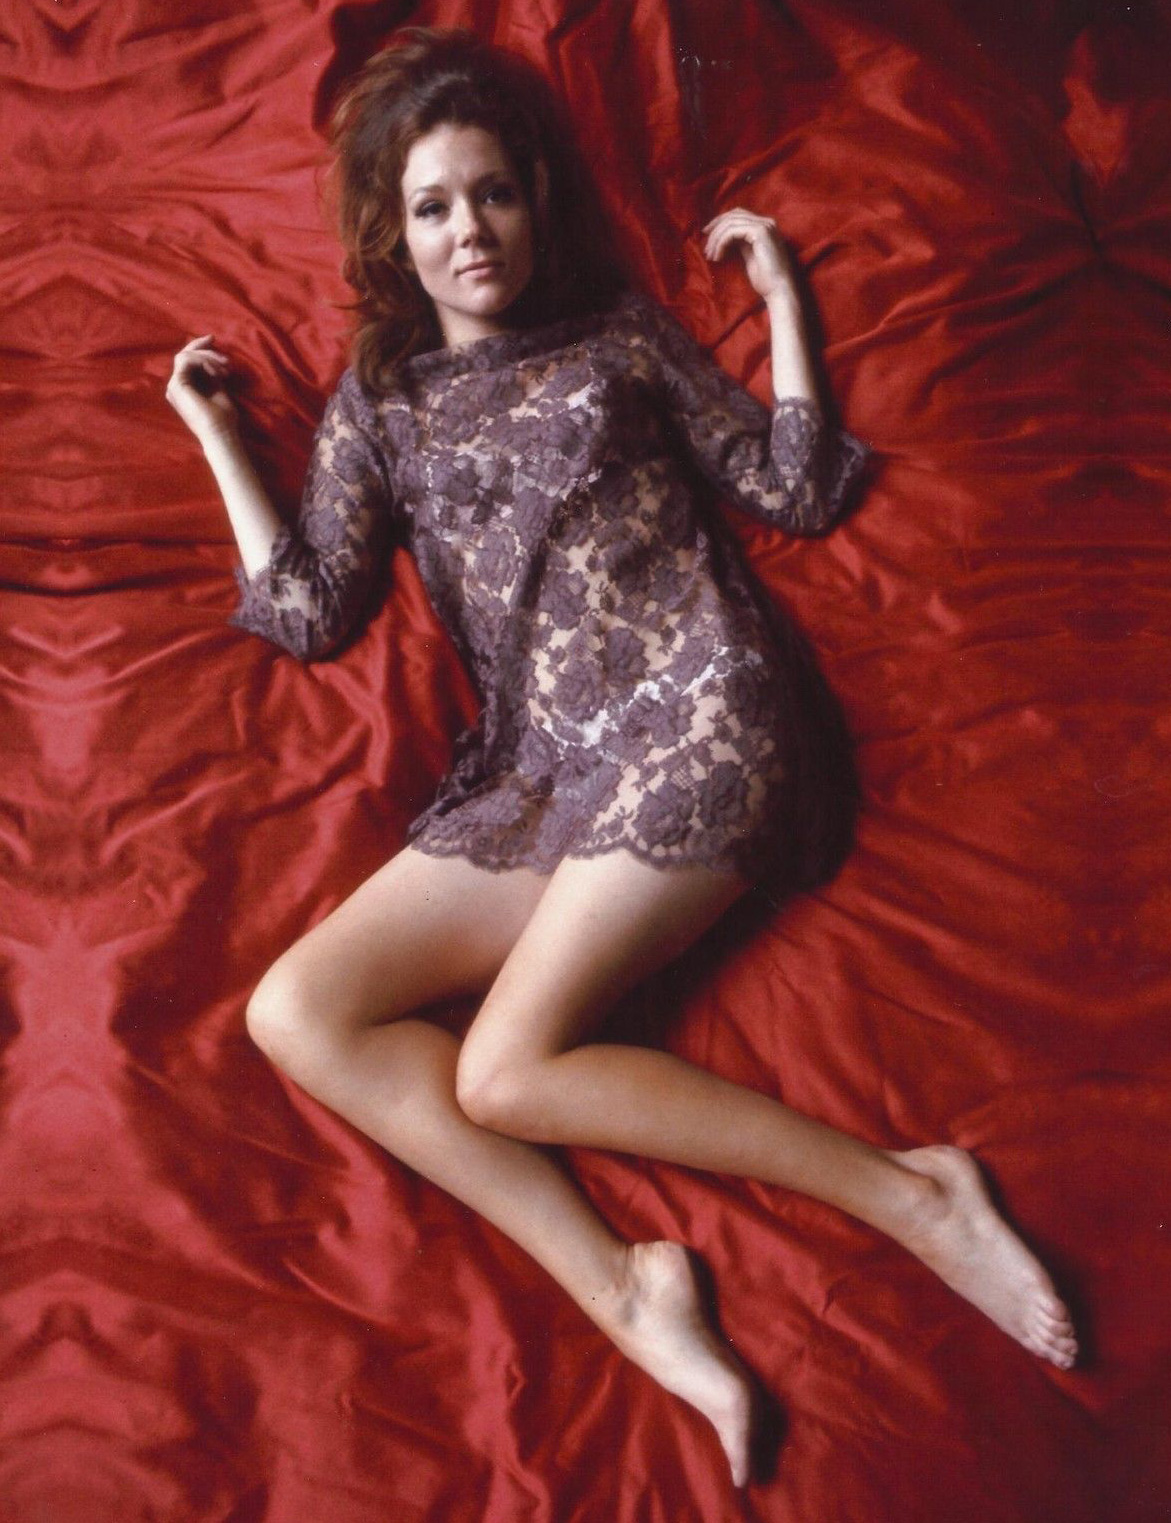 diana rigg avengersdiana rigg bond, diana rigg natalie dormer, diana rigg avengers, diana rigg game of thrones, diana rigg foto, diana rigg films, diana rigg fight scenes, diana rigg dance, diana rigg movies, diana rigg wiki, diana rigg height, diana rigg young, diana rigg bond movie, diana rigg doctor who, diana rigg instagram, diana rigg joely richardson, diana rigg telly savalas, diana rigg oliver reed, diana rigg photos, diana rigg daughter